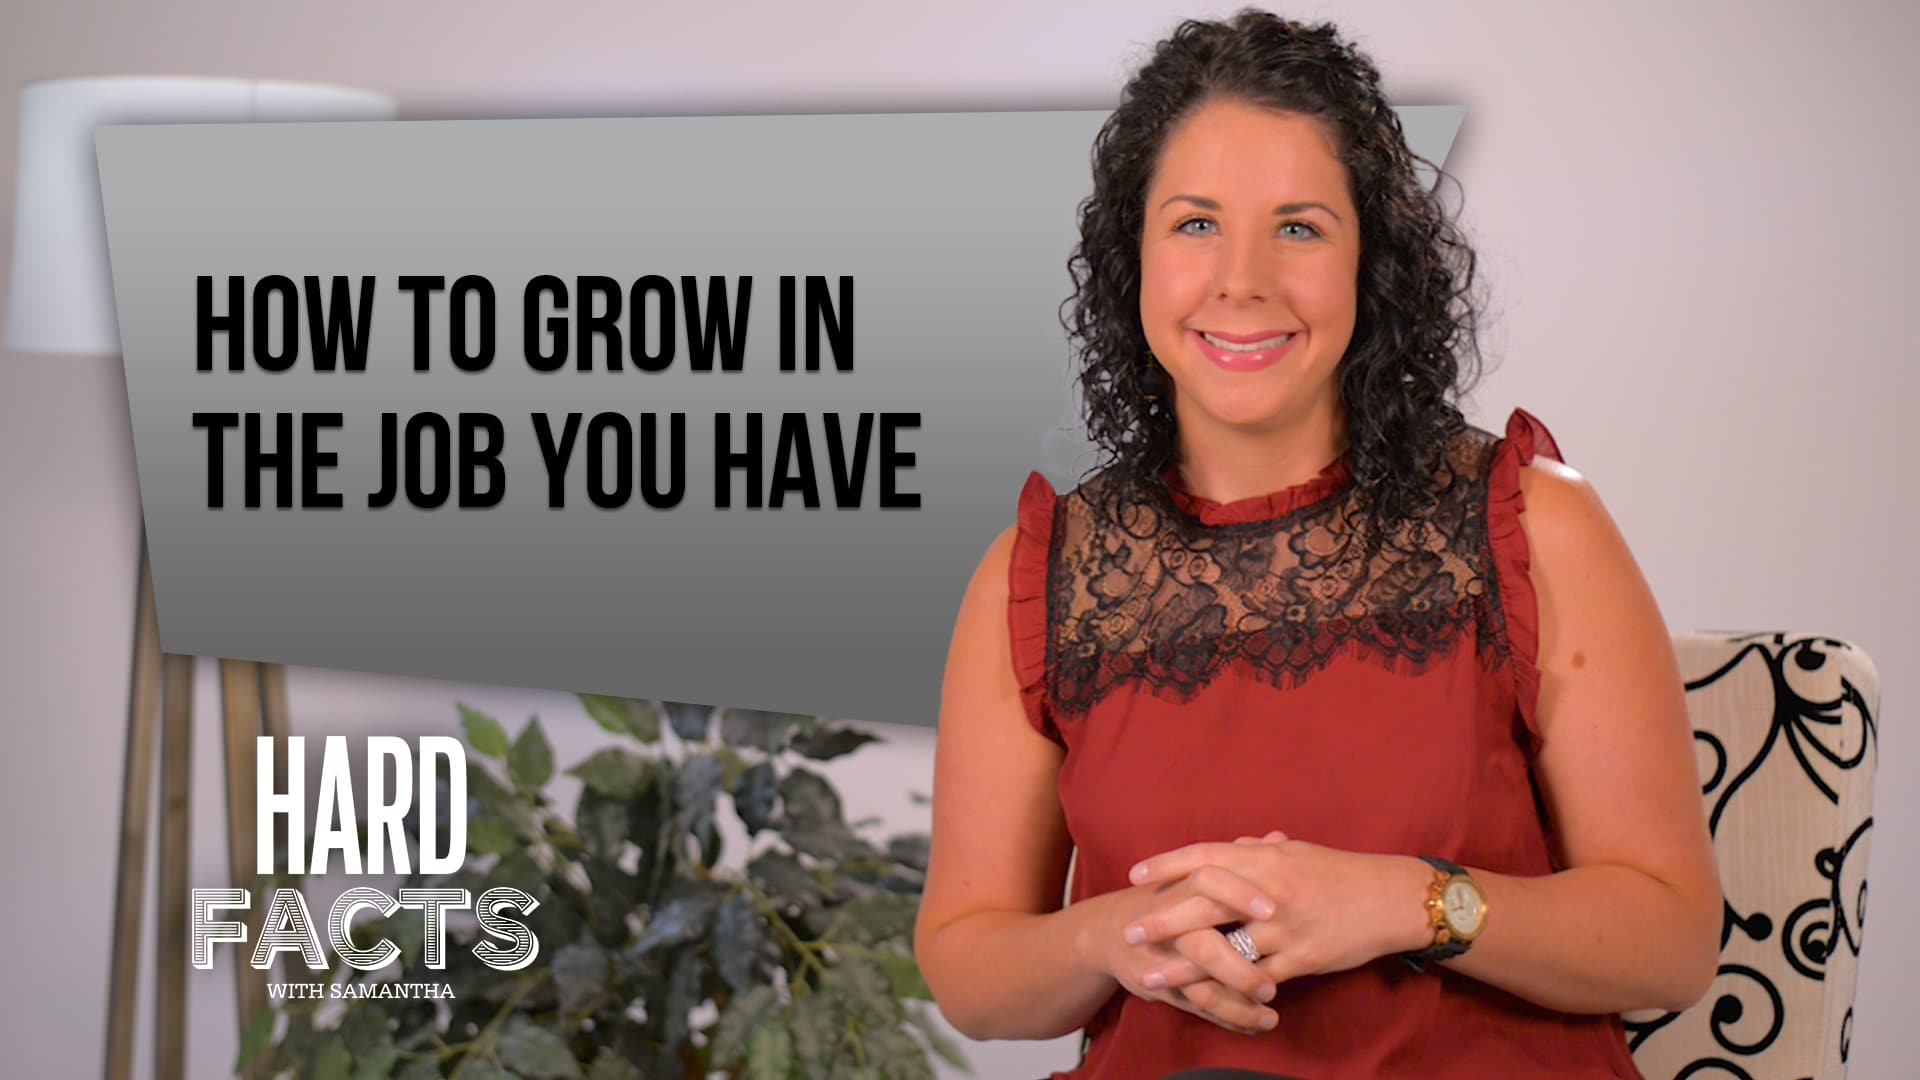 How to Grow in the Job You Have – Creating Professional Opportunities